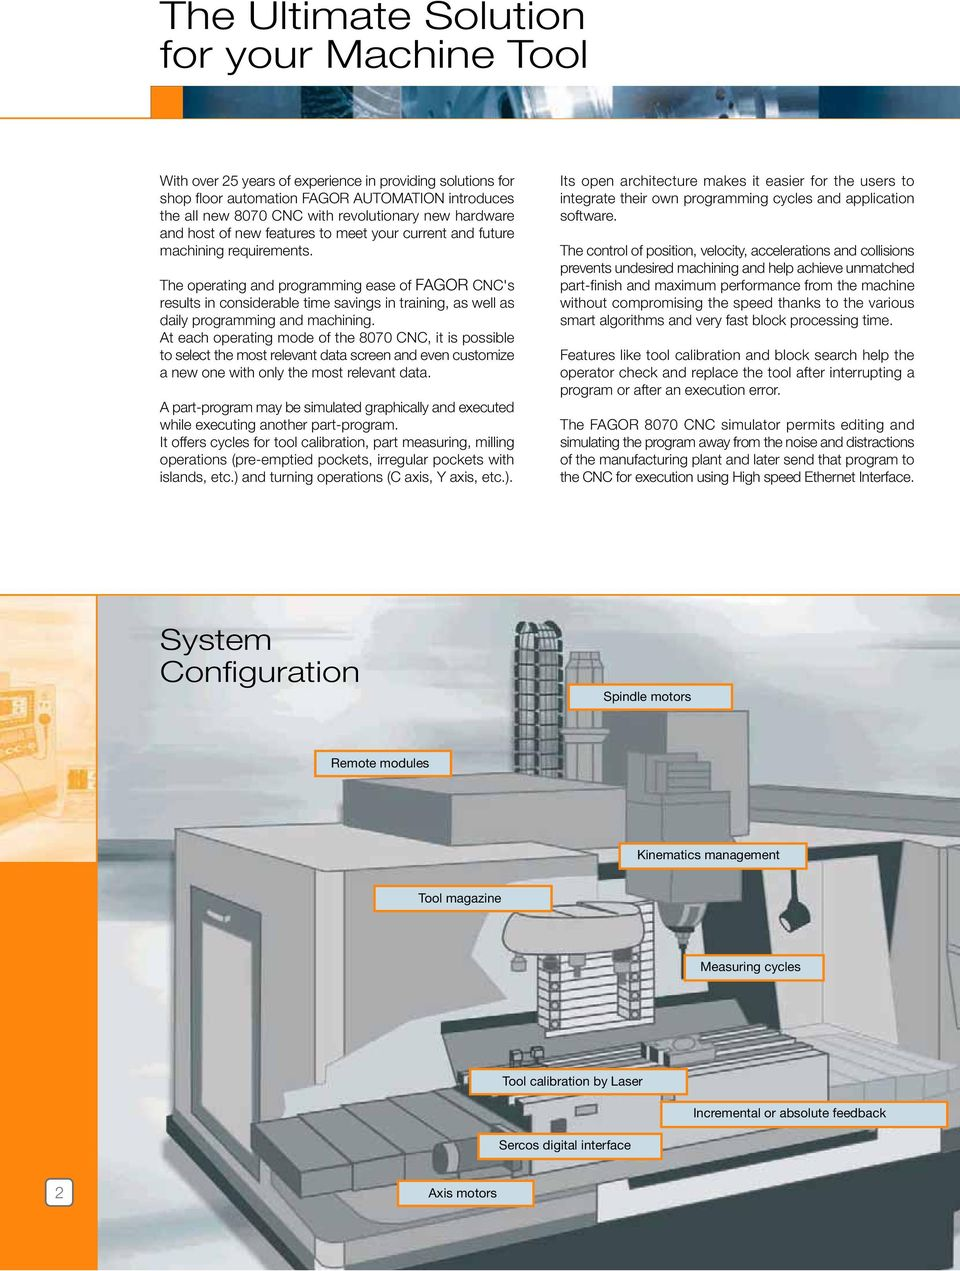 The Ultimate Solution for your Machine Tool - PDF